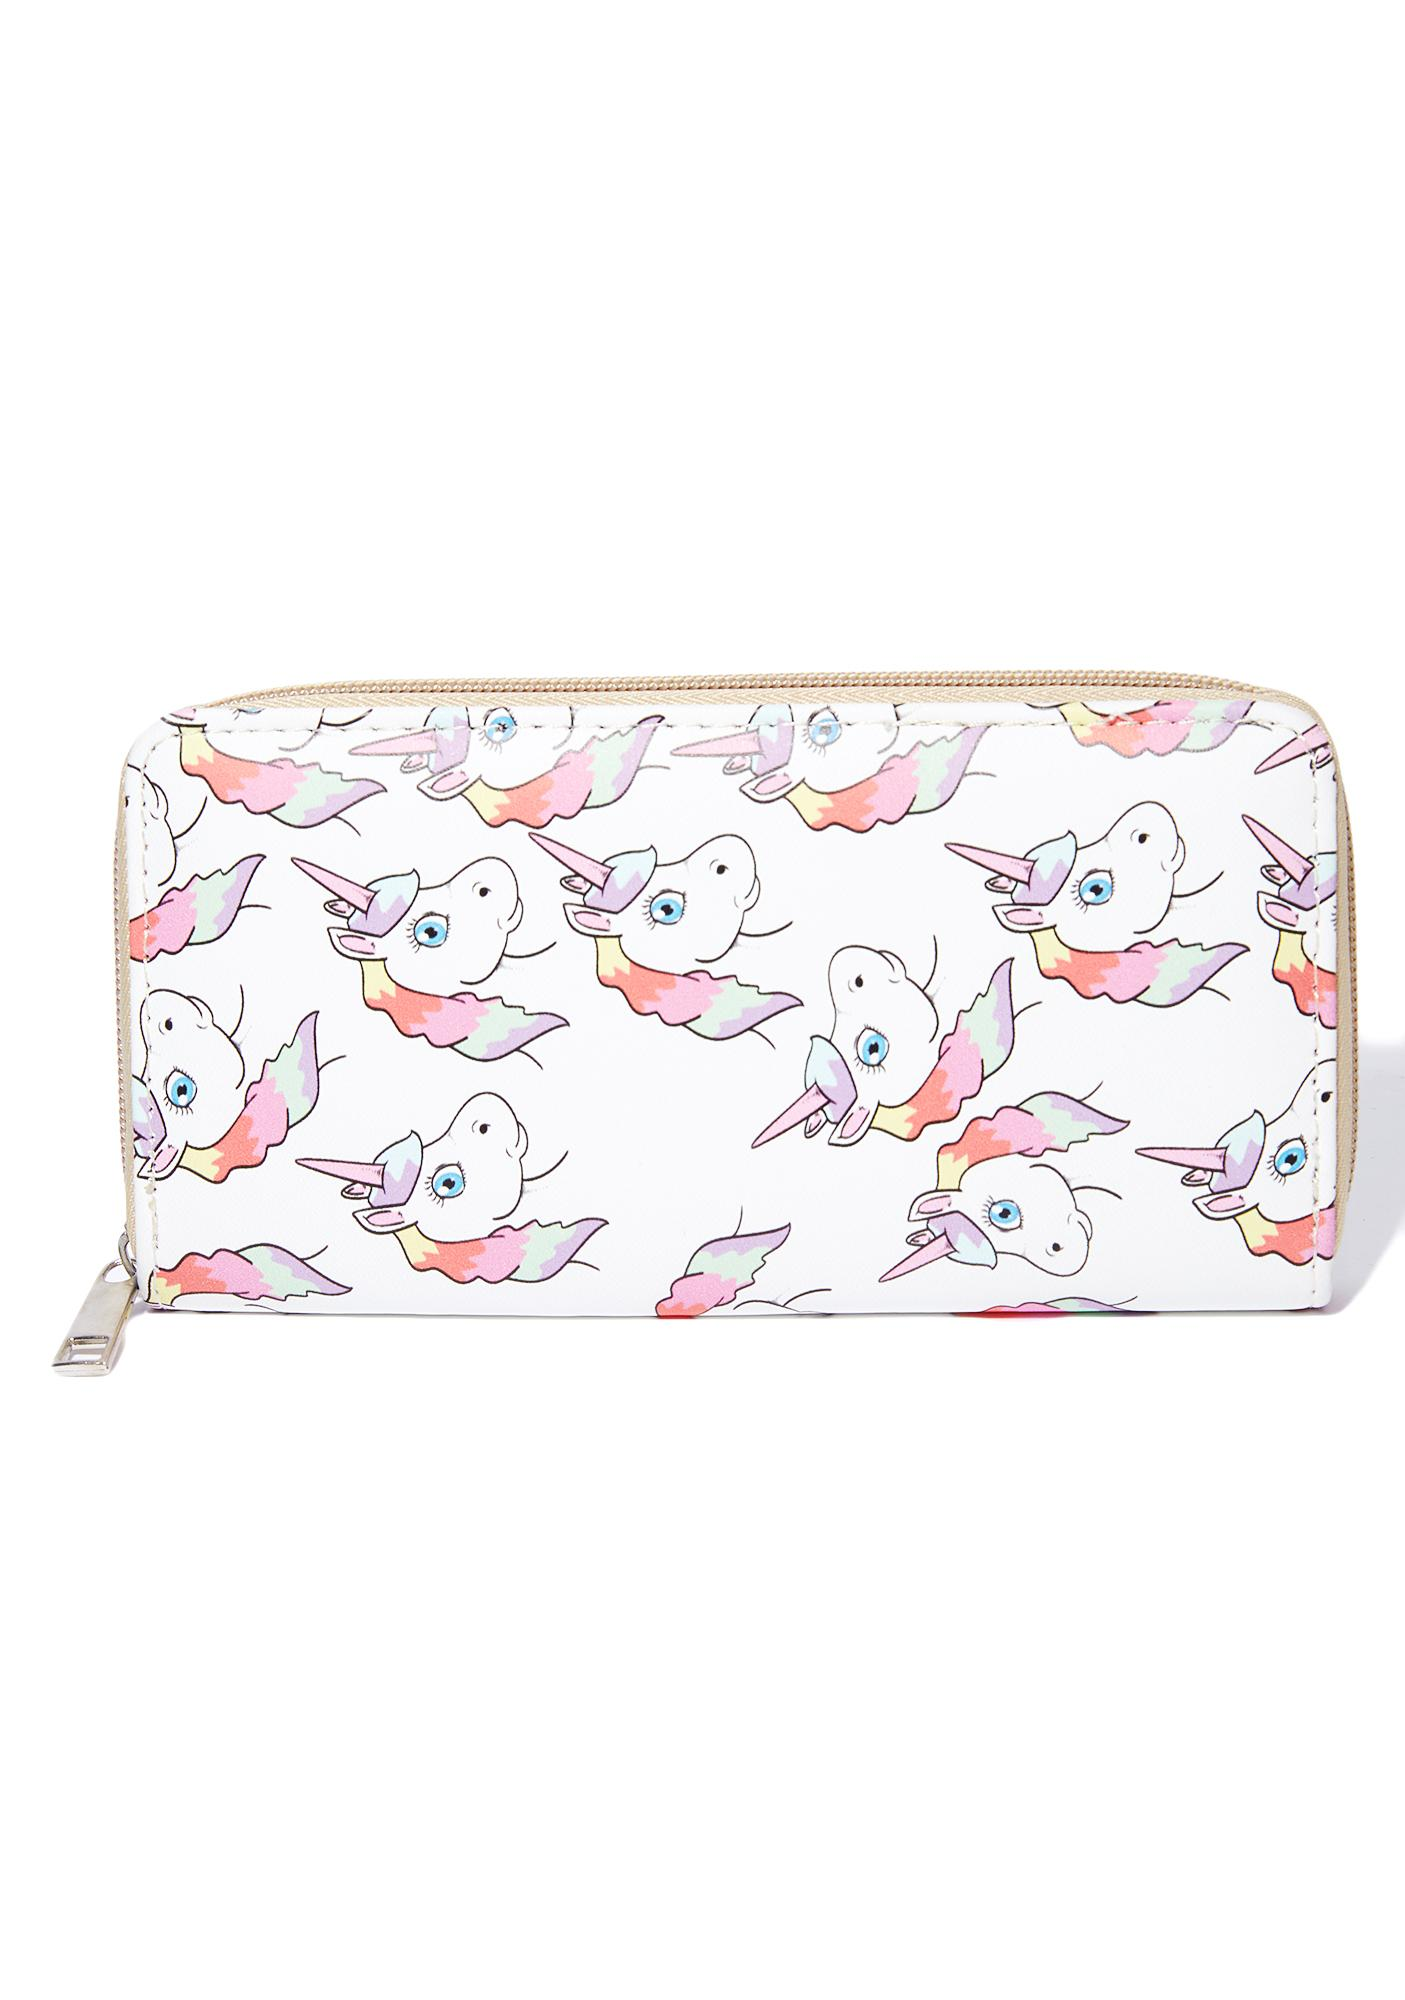 Magical Creature Unicorn Wallet